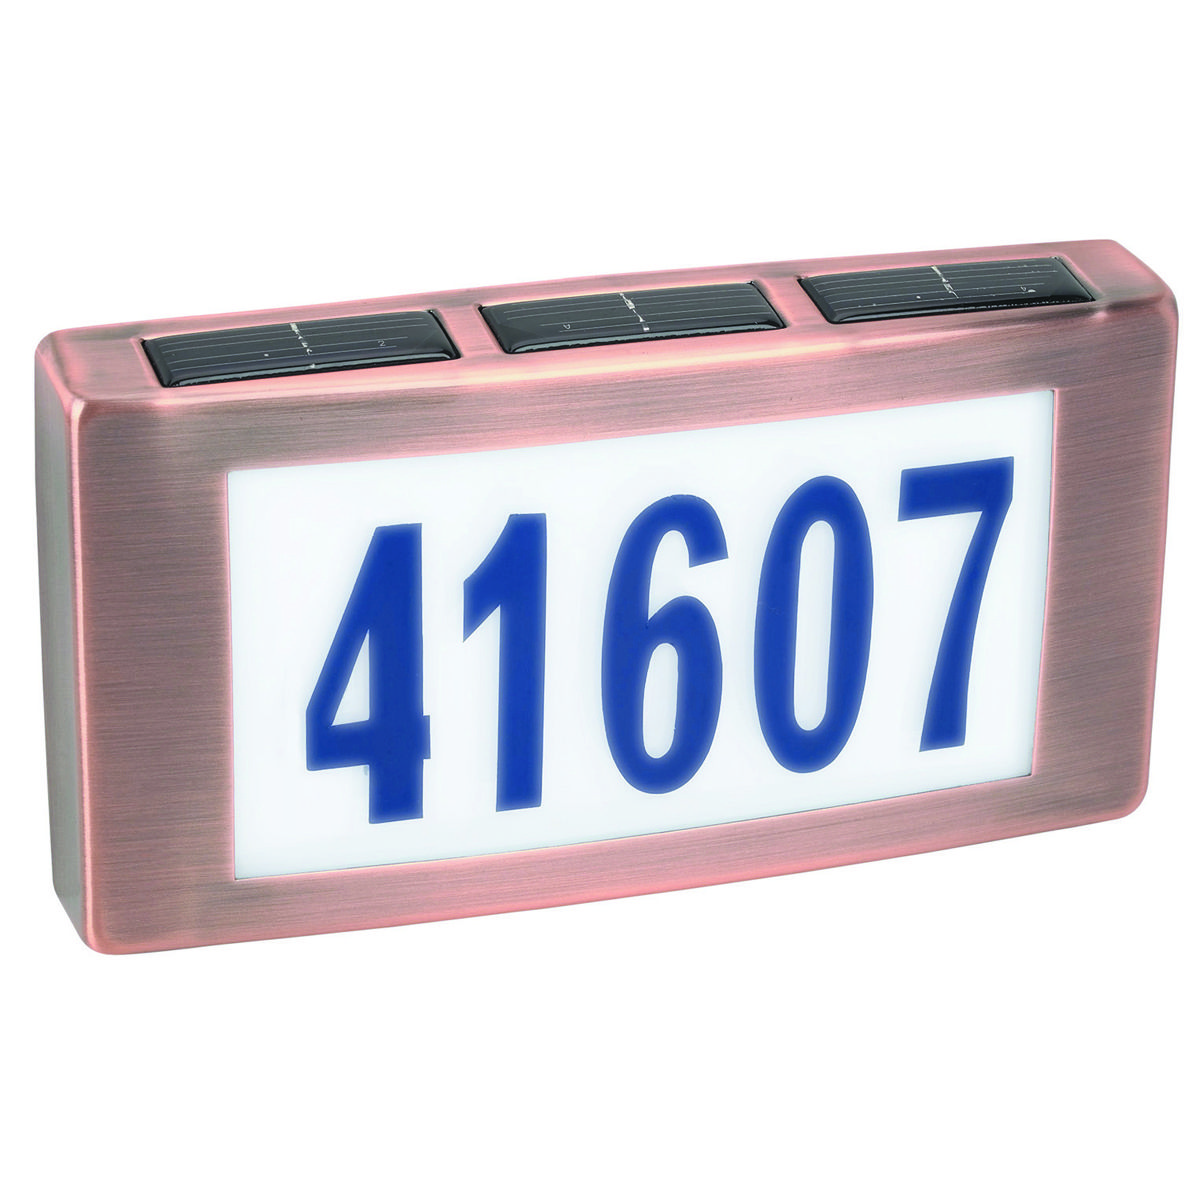 Solar House Address Number Plaque House Address Numbers Solar House Solar Led Lights